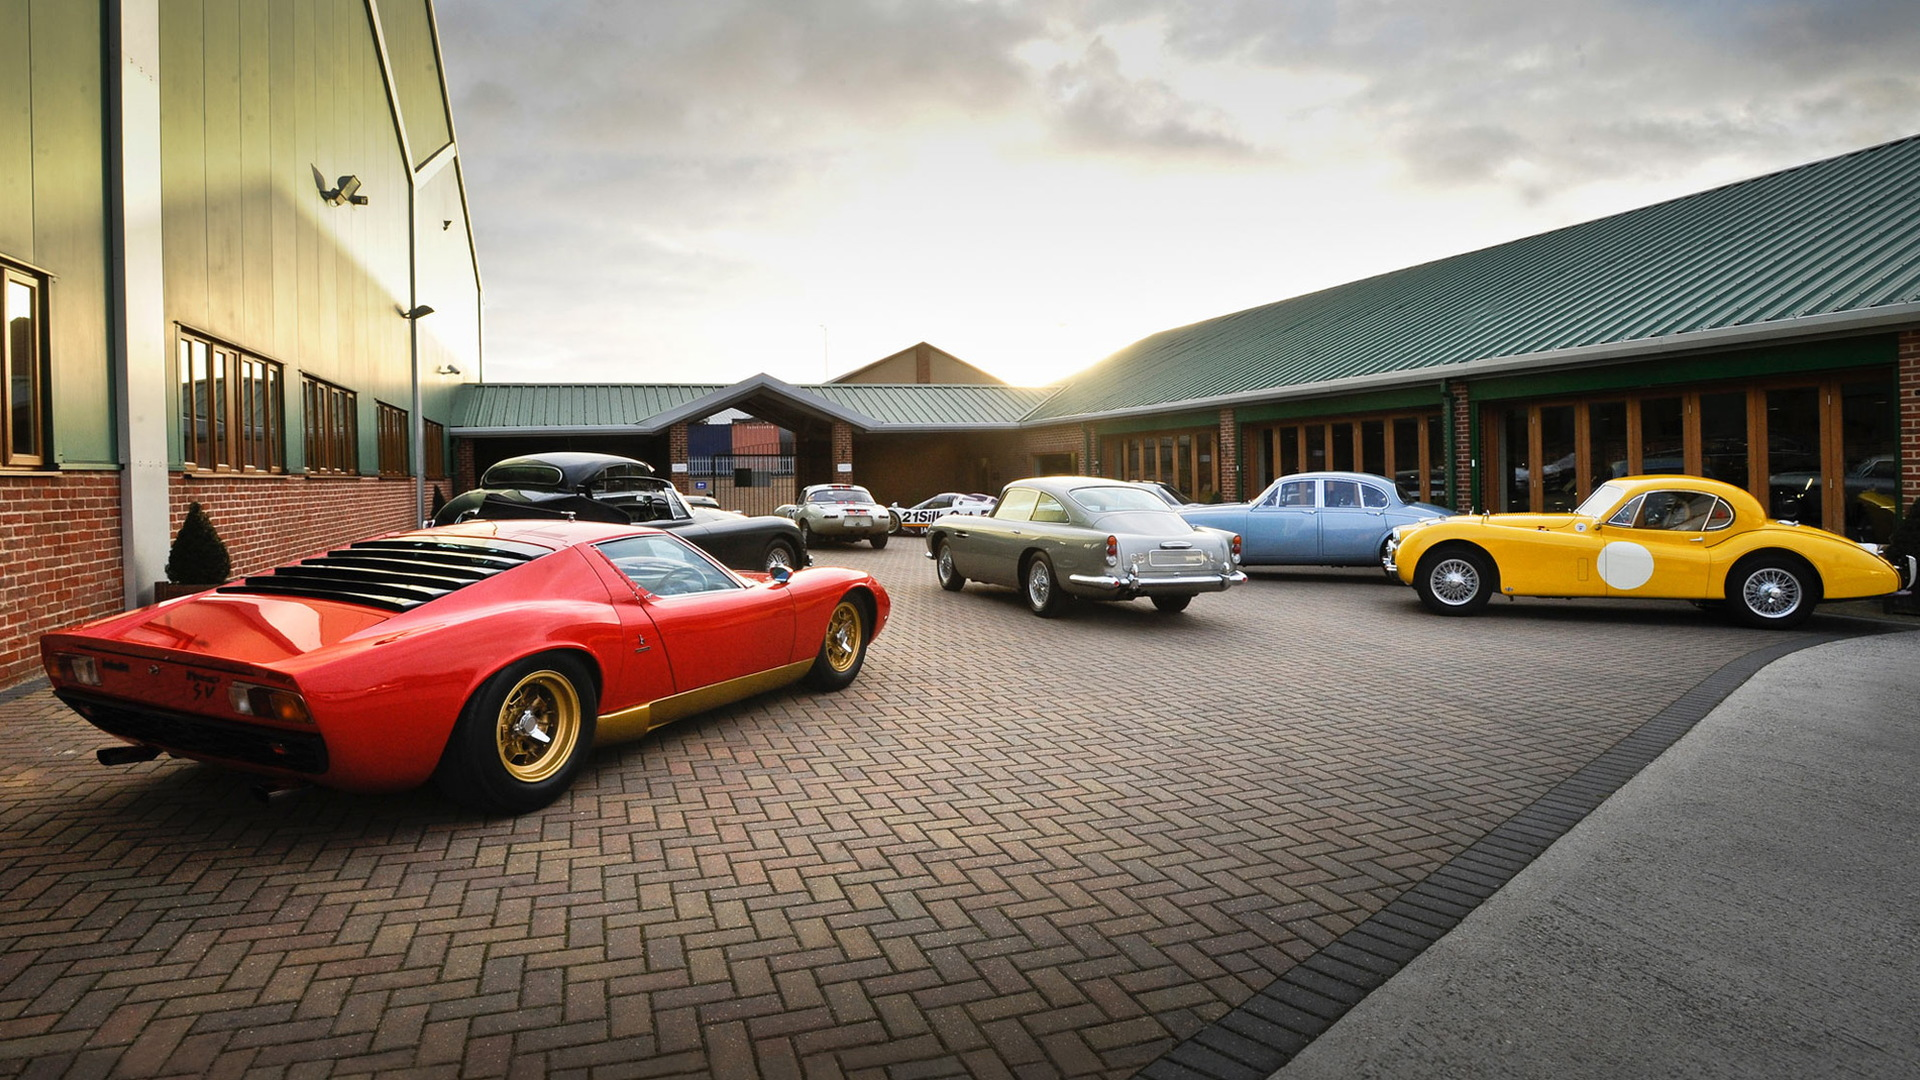 JD Classics center in Maldon, United Kingdom